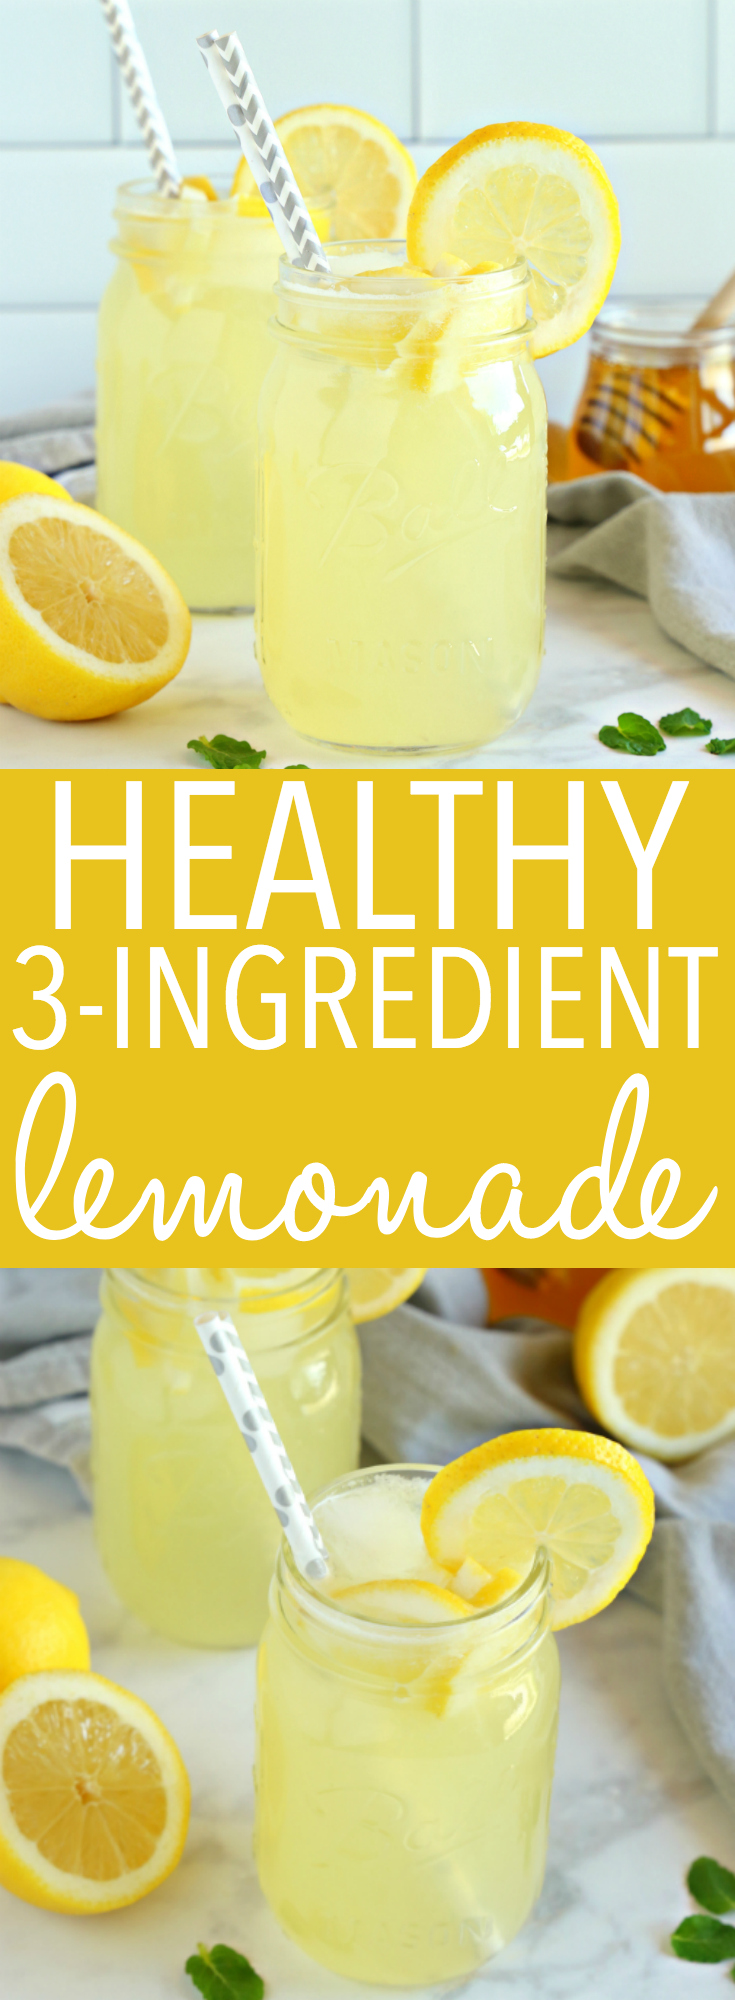 This Healthy 3-Ingredient Lemonade is a delicious all natural summer drink that's free of refined sugars and made with only 3 simple ingredients! Recipe from thebusybaker.ca! #healthylemonade #healthysummerdrink #weightwatcherslemonade via @busybakerblog